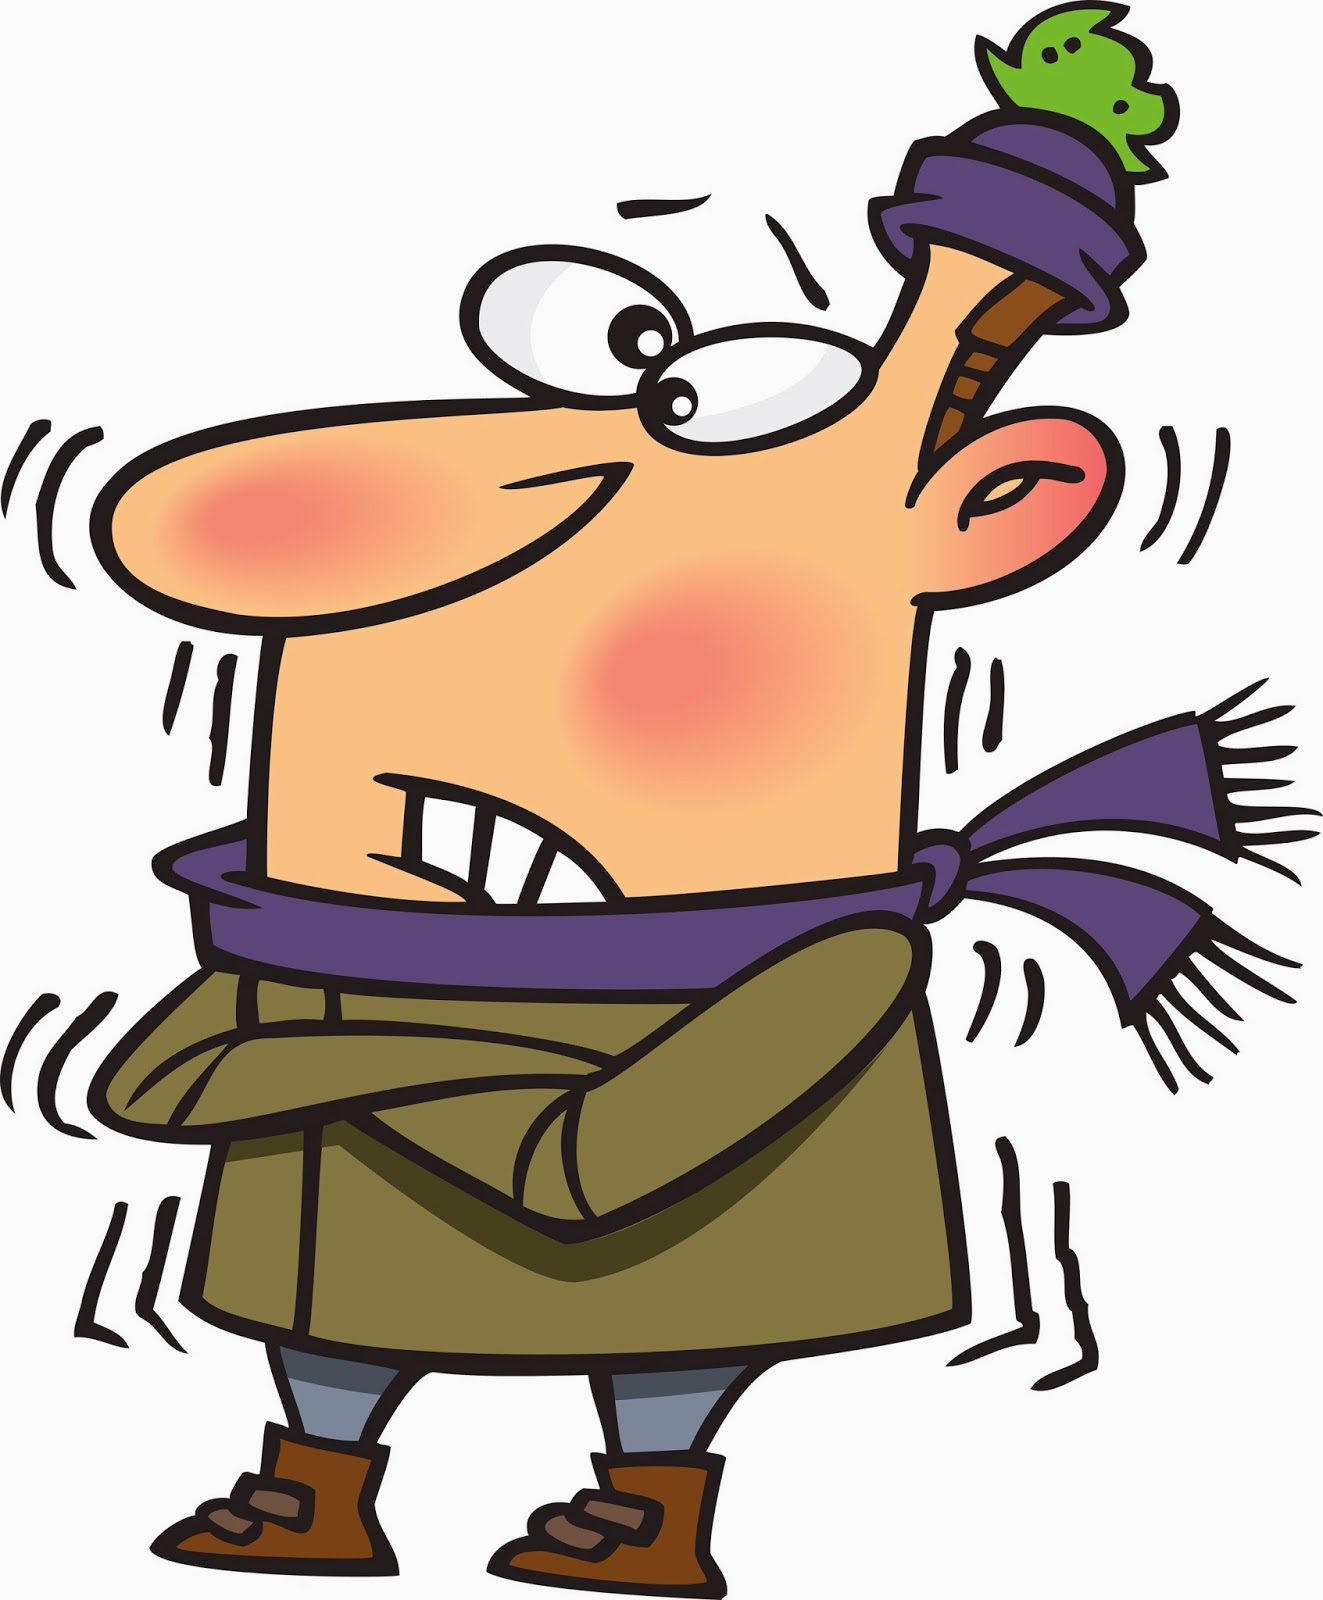 Chill clipart homeostasis Cliparts clipart for Hypothermia Zone